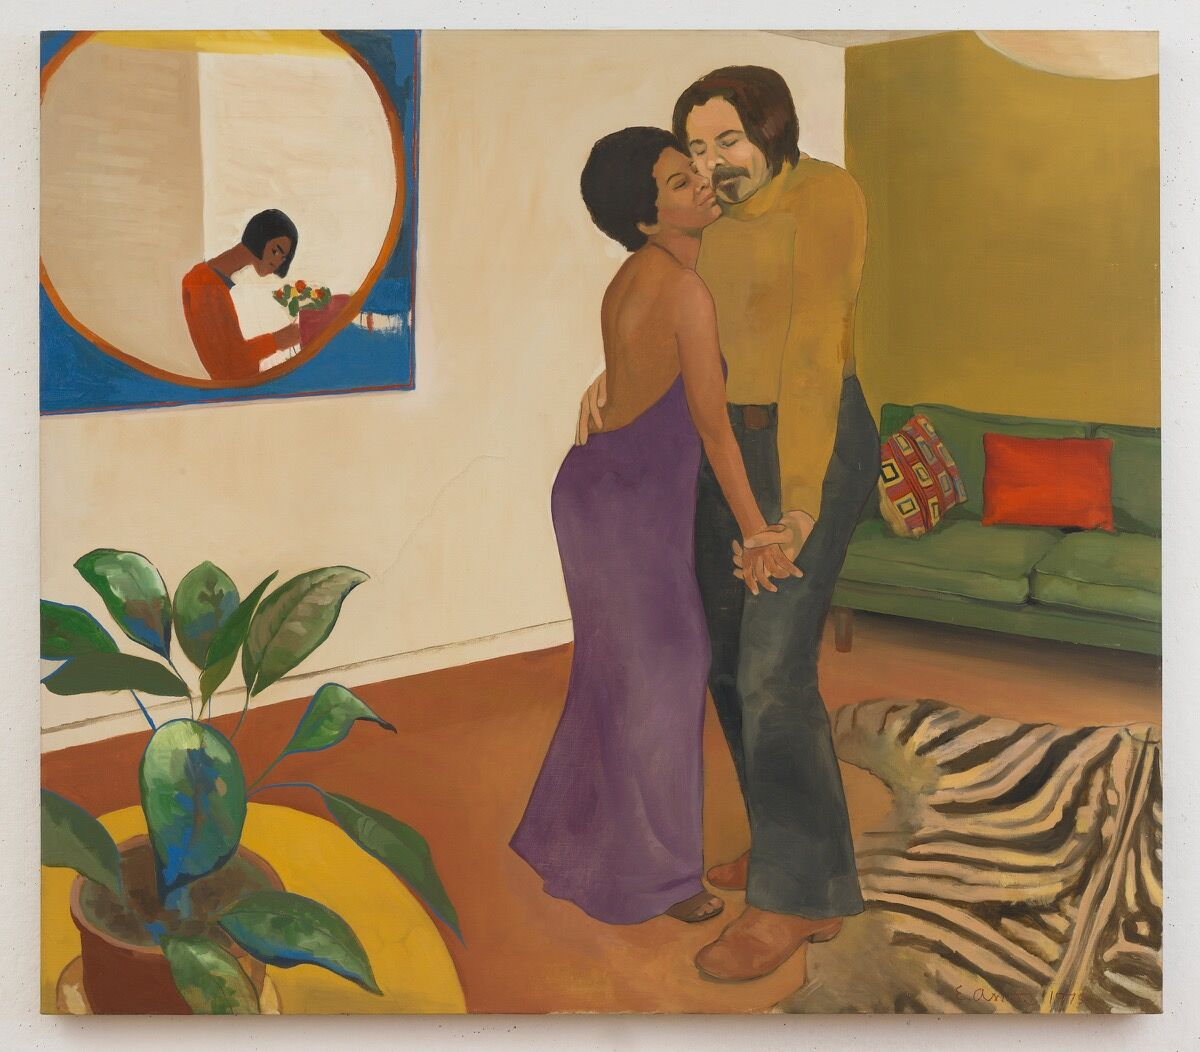 Emma Amos, Sandy and her Husband, 1973. Courtesy of the Brooklyn Museum.